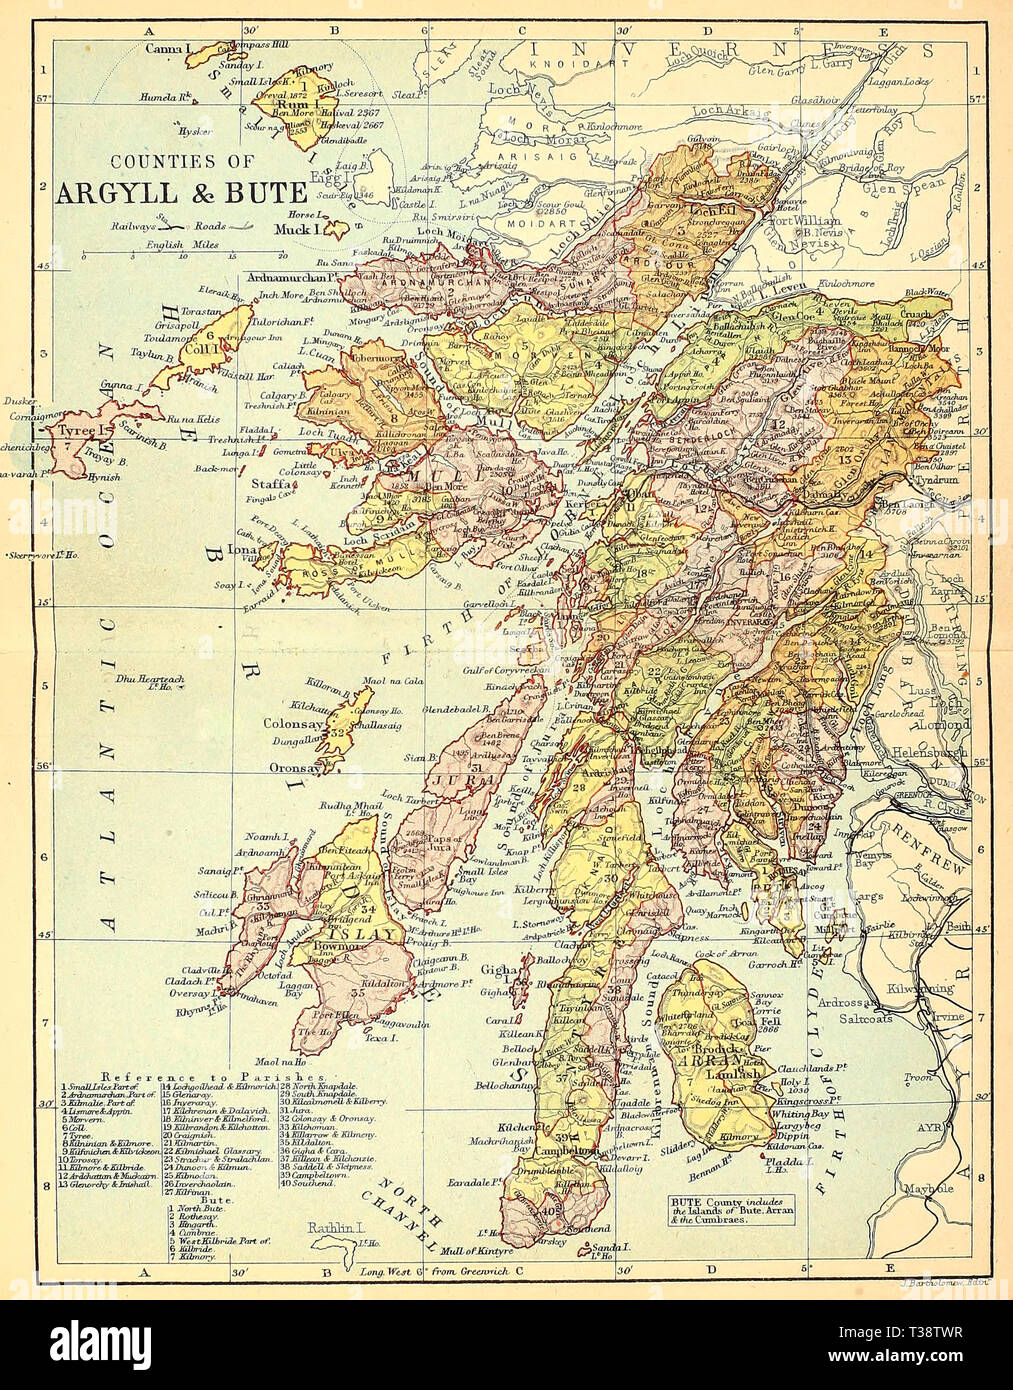 Map of the Counties of Argyll & Bute, Scotland, circa 1882 - Stock Image